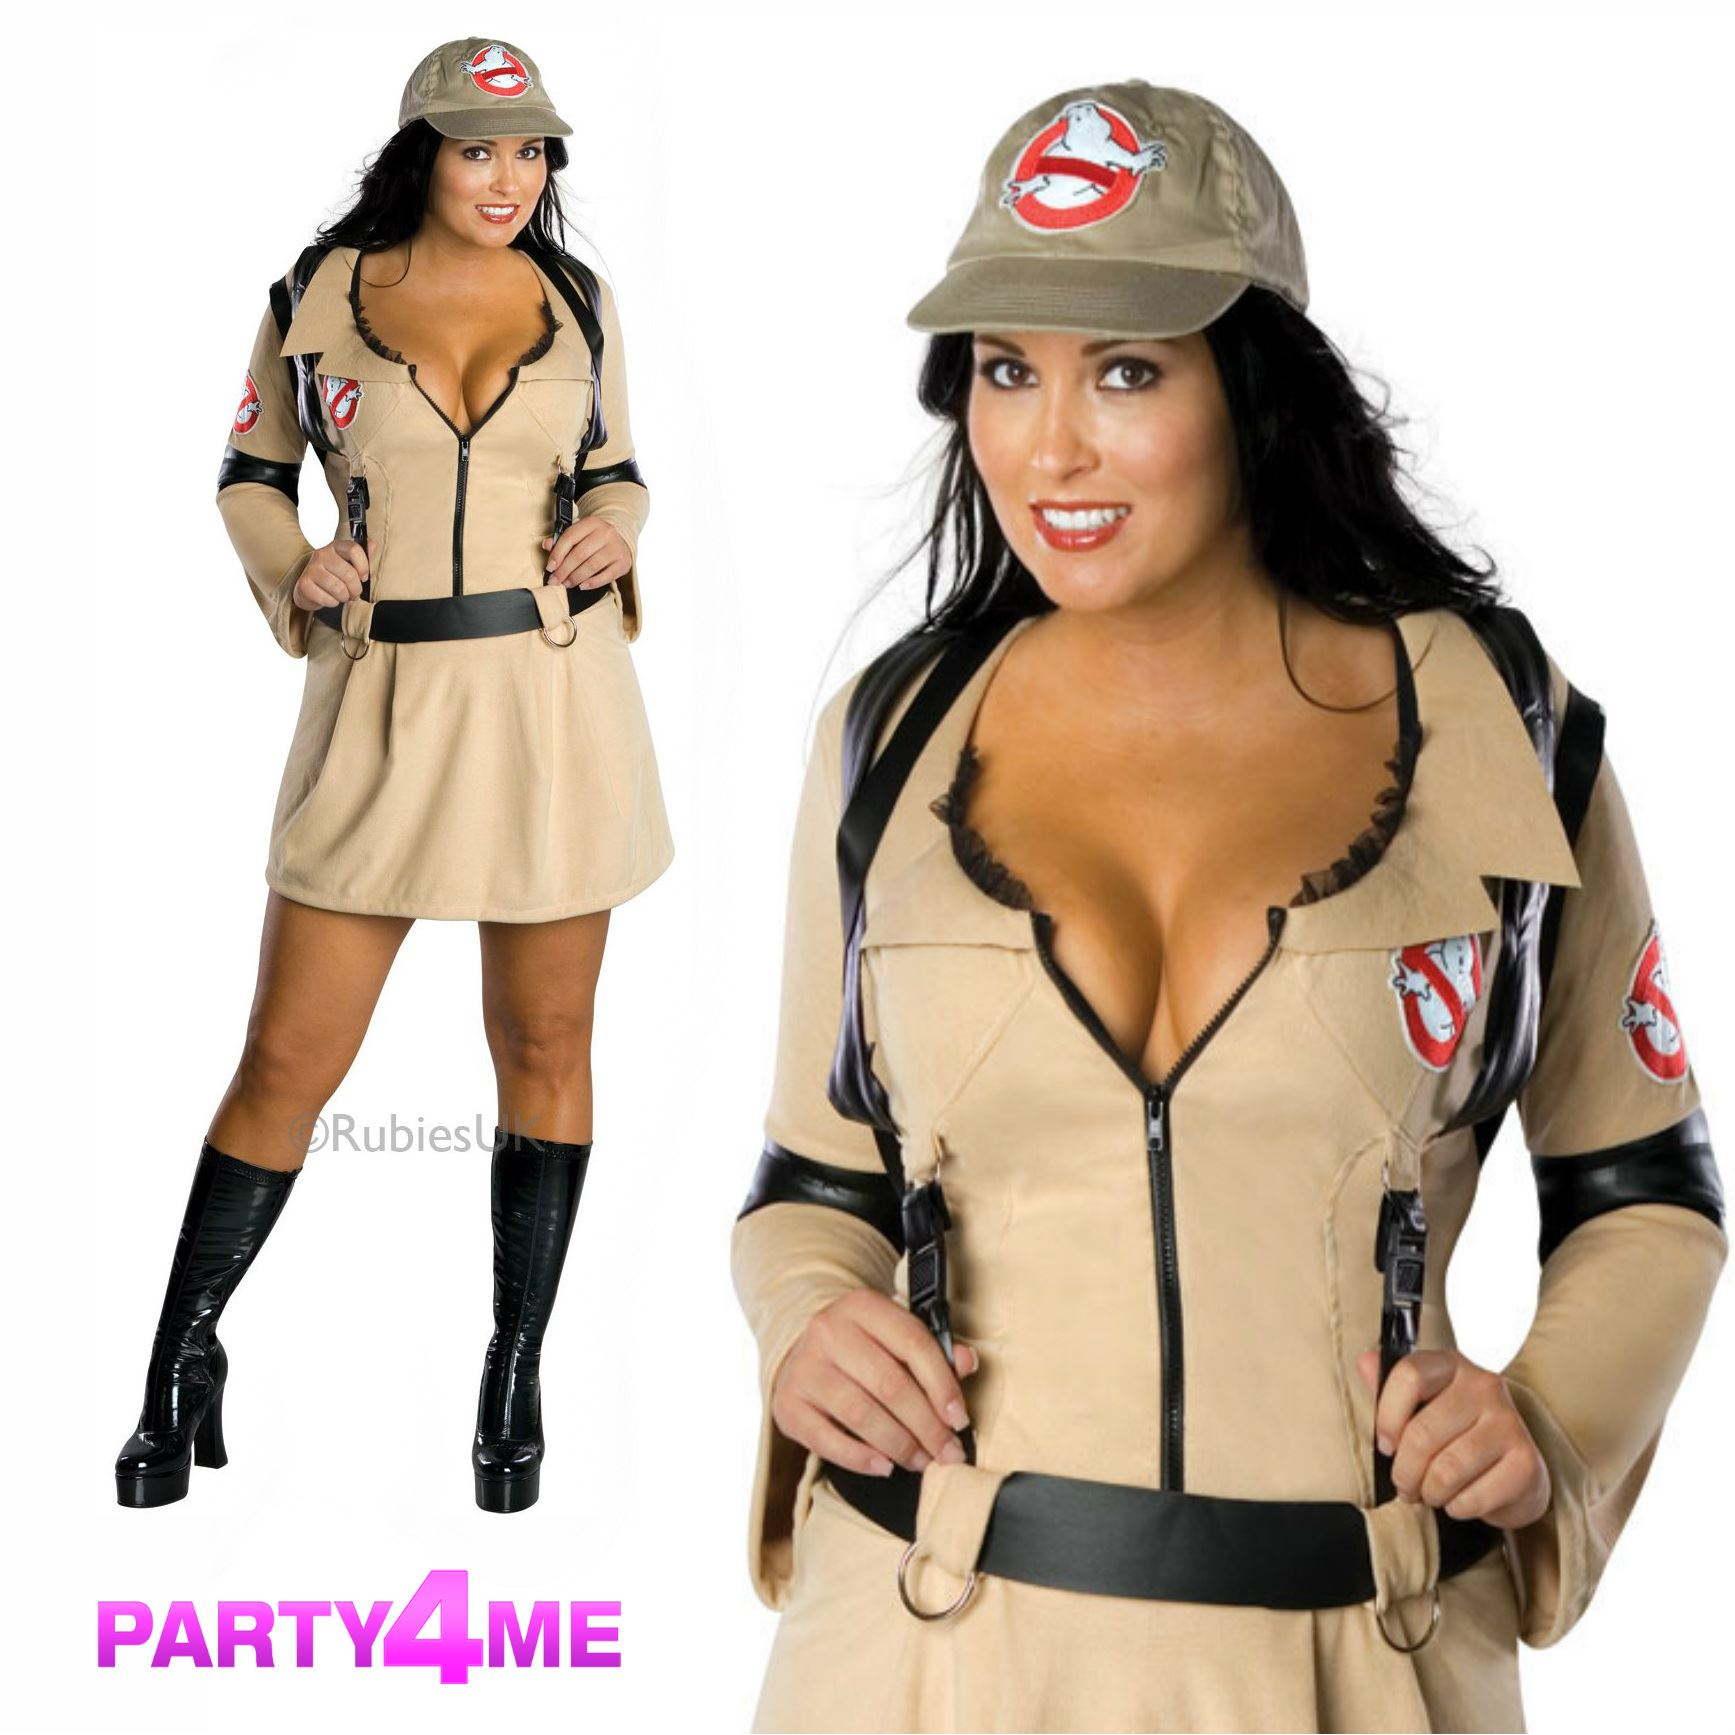 Sexy ghostbuster costumes nude image